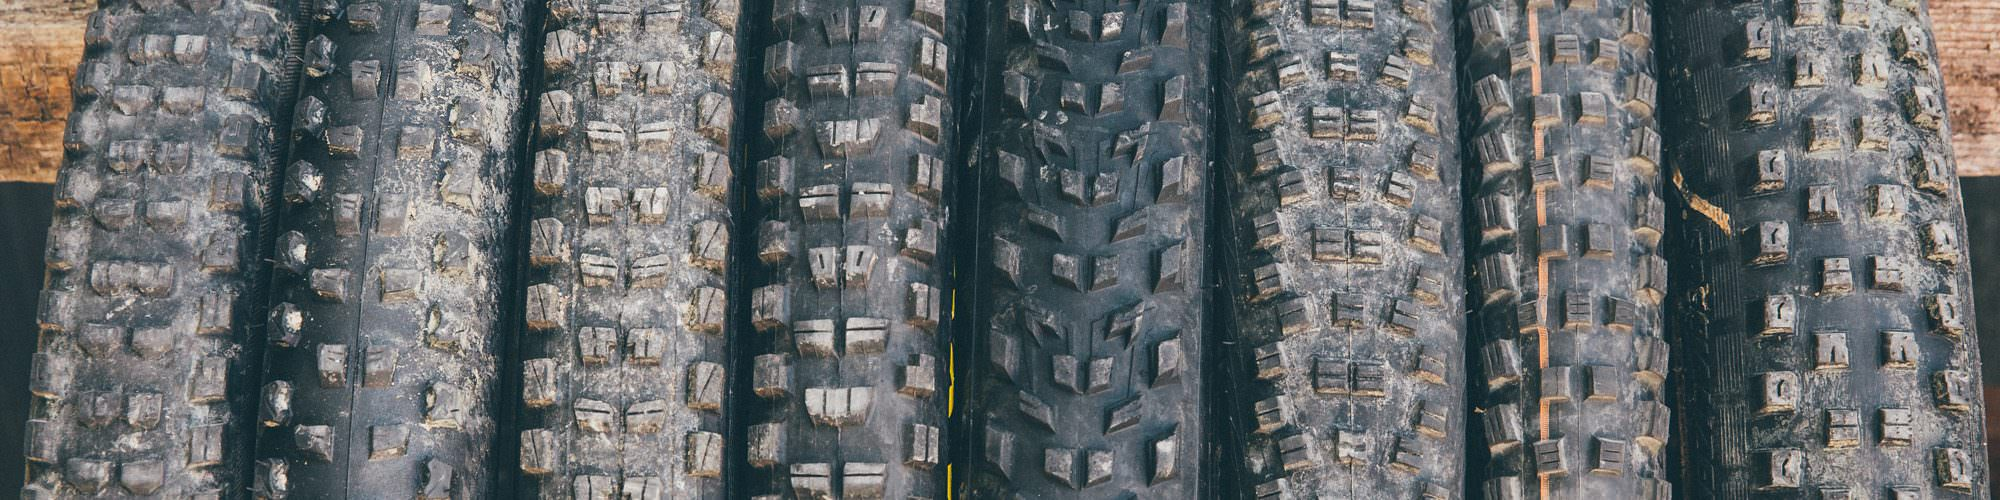 Black Gold – 8 enduro tires tested in the lab and on the